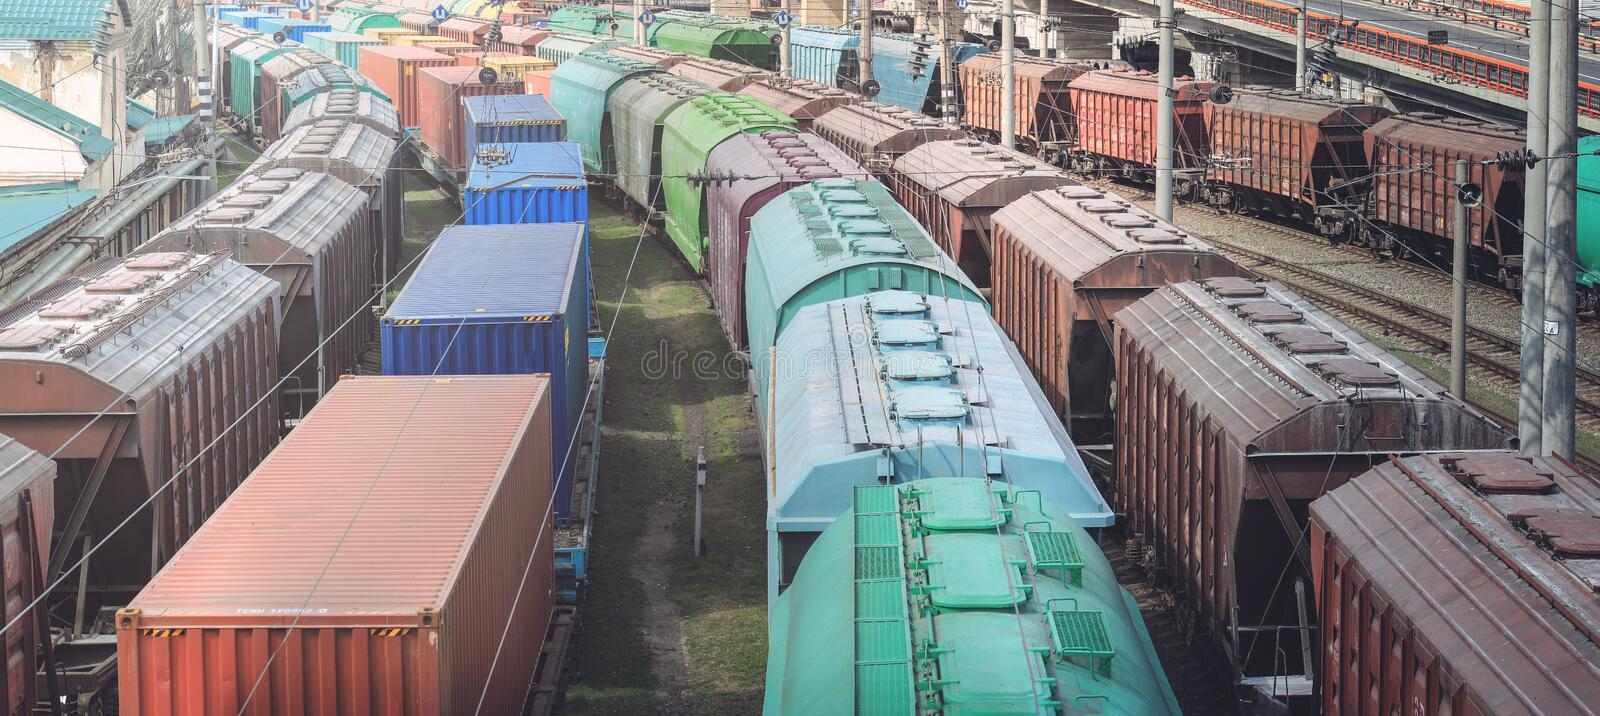 Railway wagons with cargo of metal and grain in port of Odessa. trains are waiting in line for loading at cargo terminal. stock photos